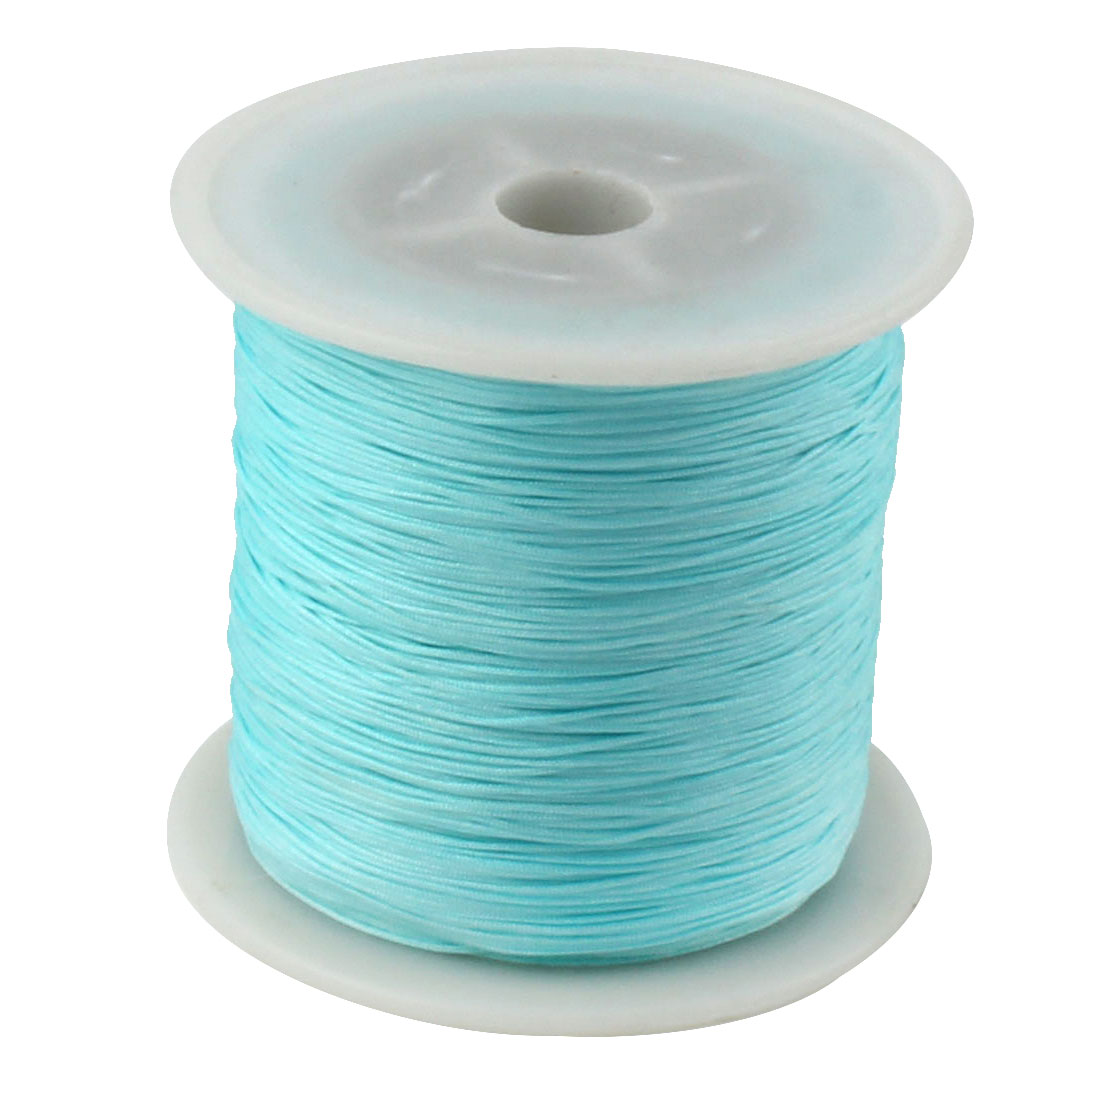 Nylon DIY Art Craft Braided Beading Cord String Rope Roll Sky Blue 153 Yards